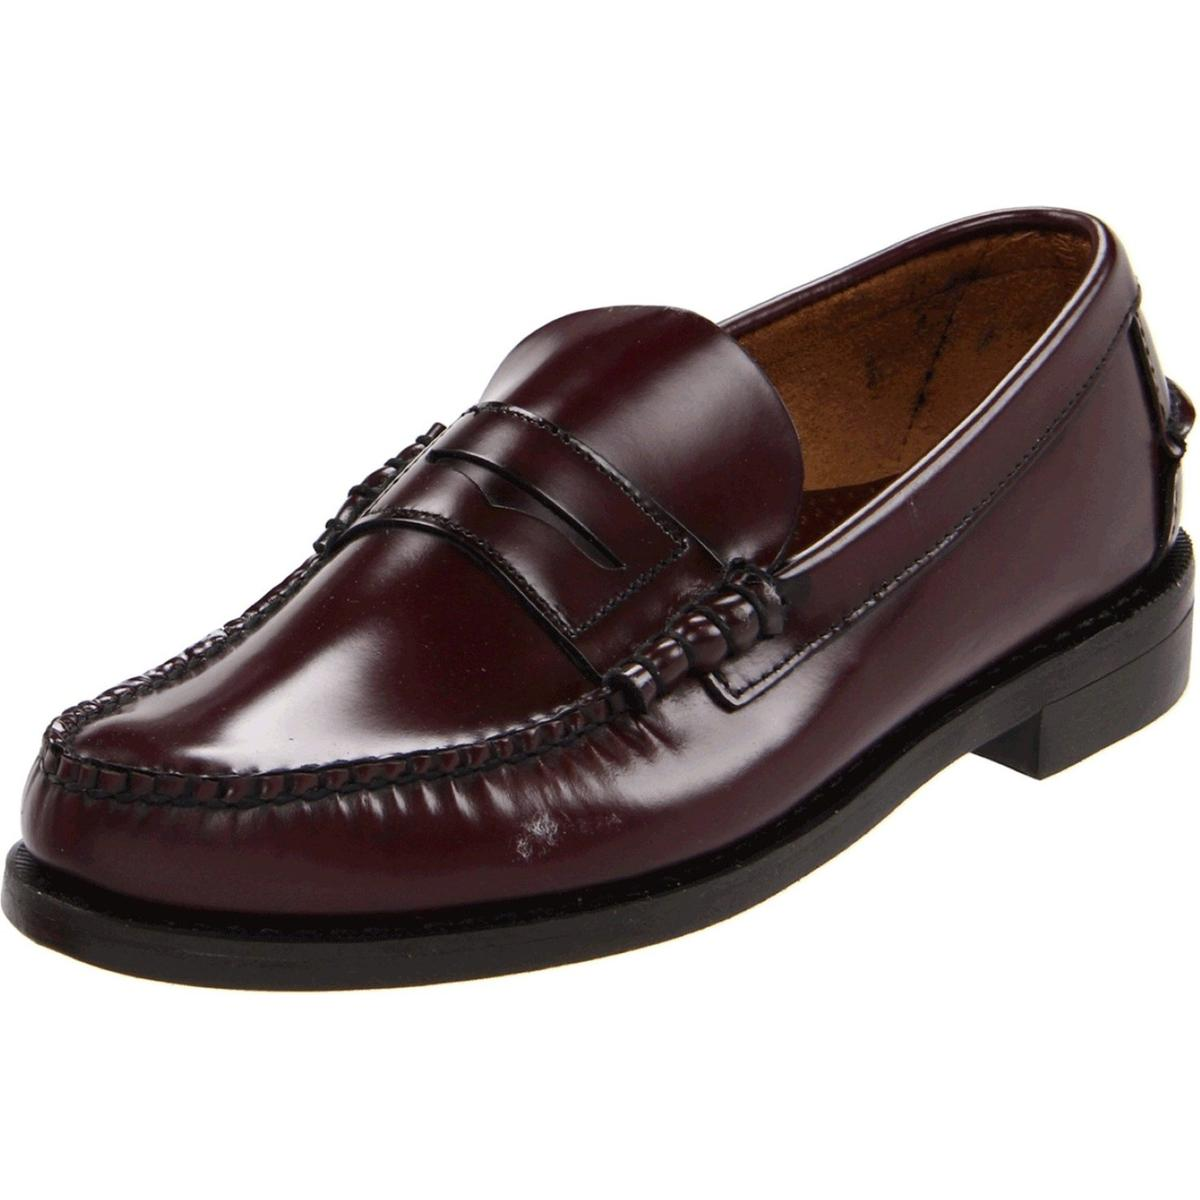 Sebago Classic Antique Mens Antique Brown Loafers by Sebago